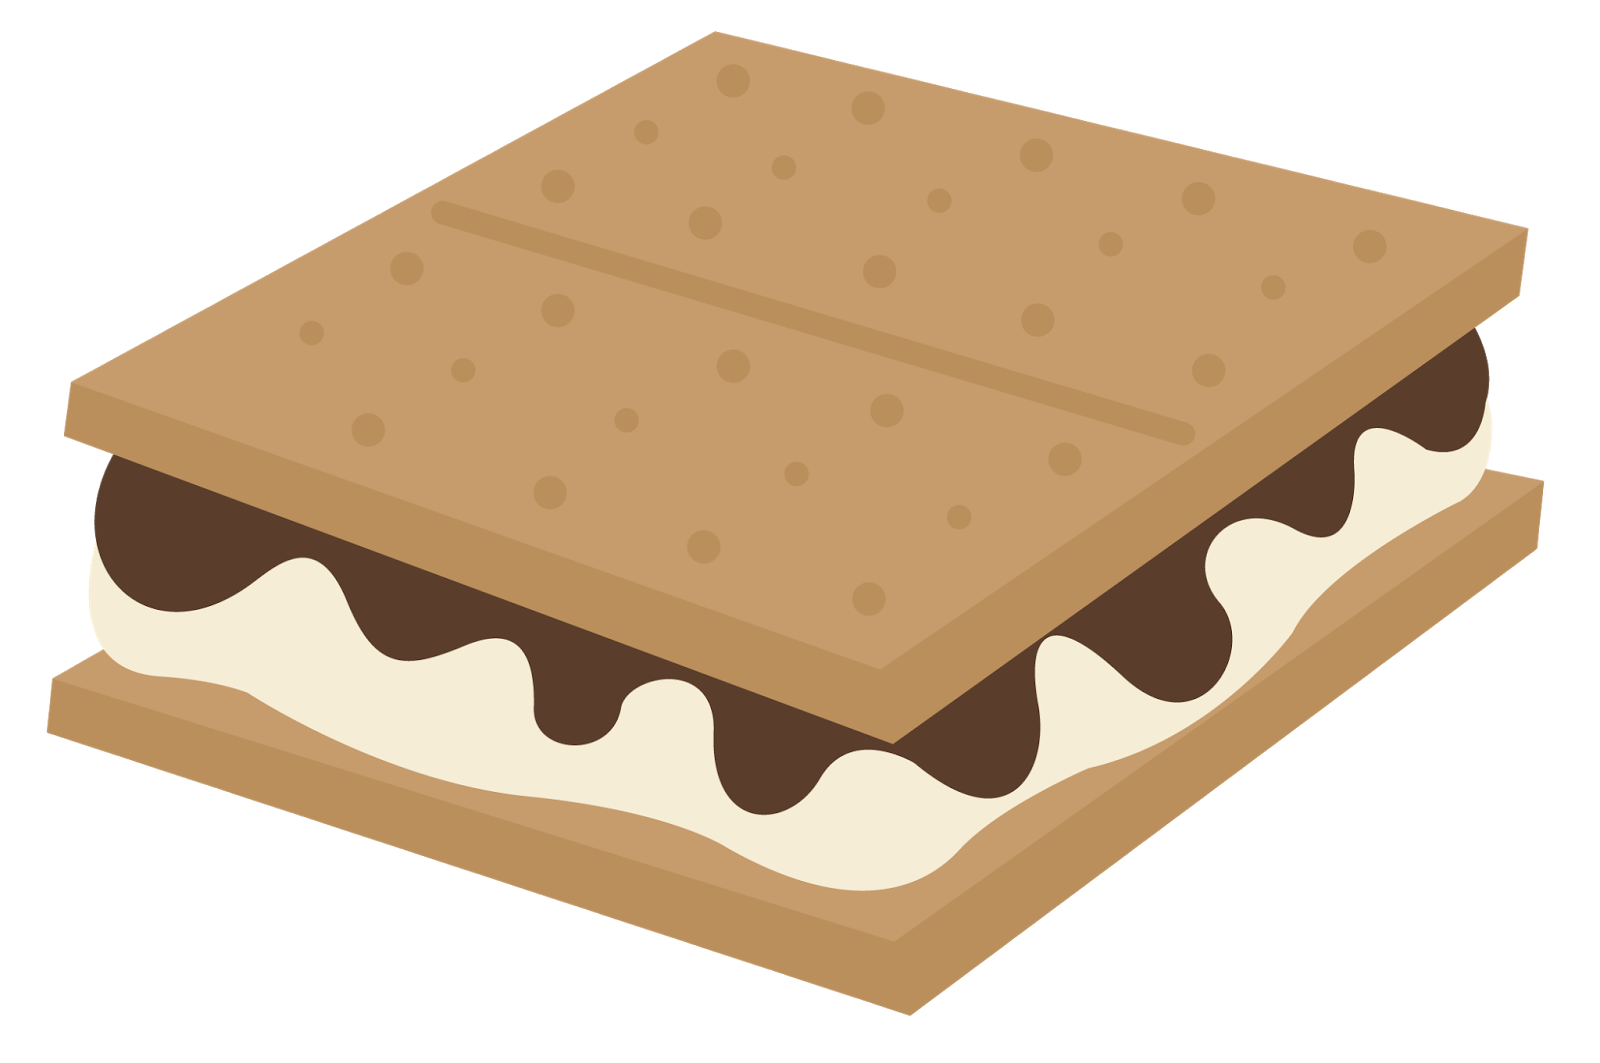 vector transparent stock Smores clipart. Mores many interesting cliparts